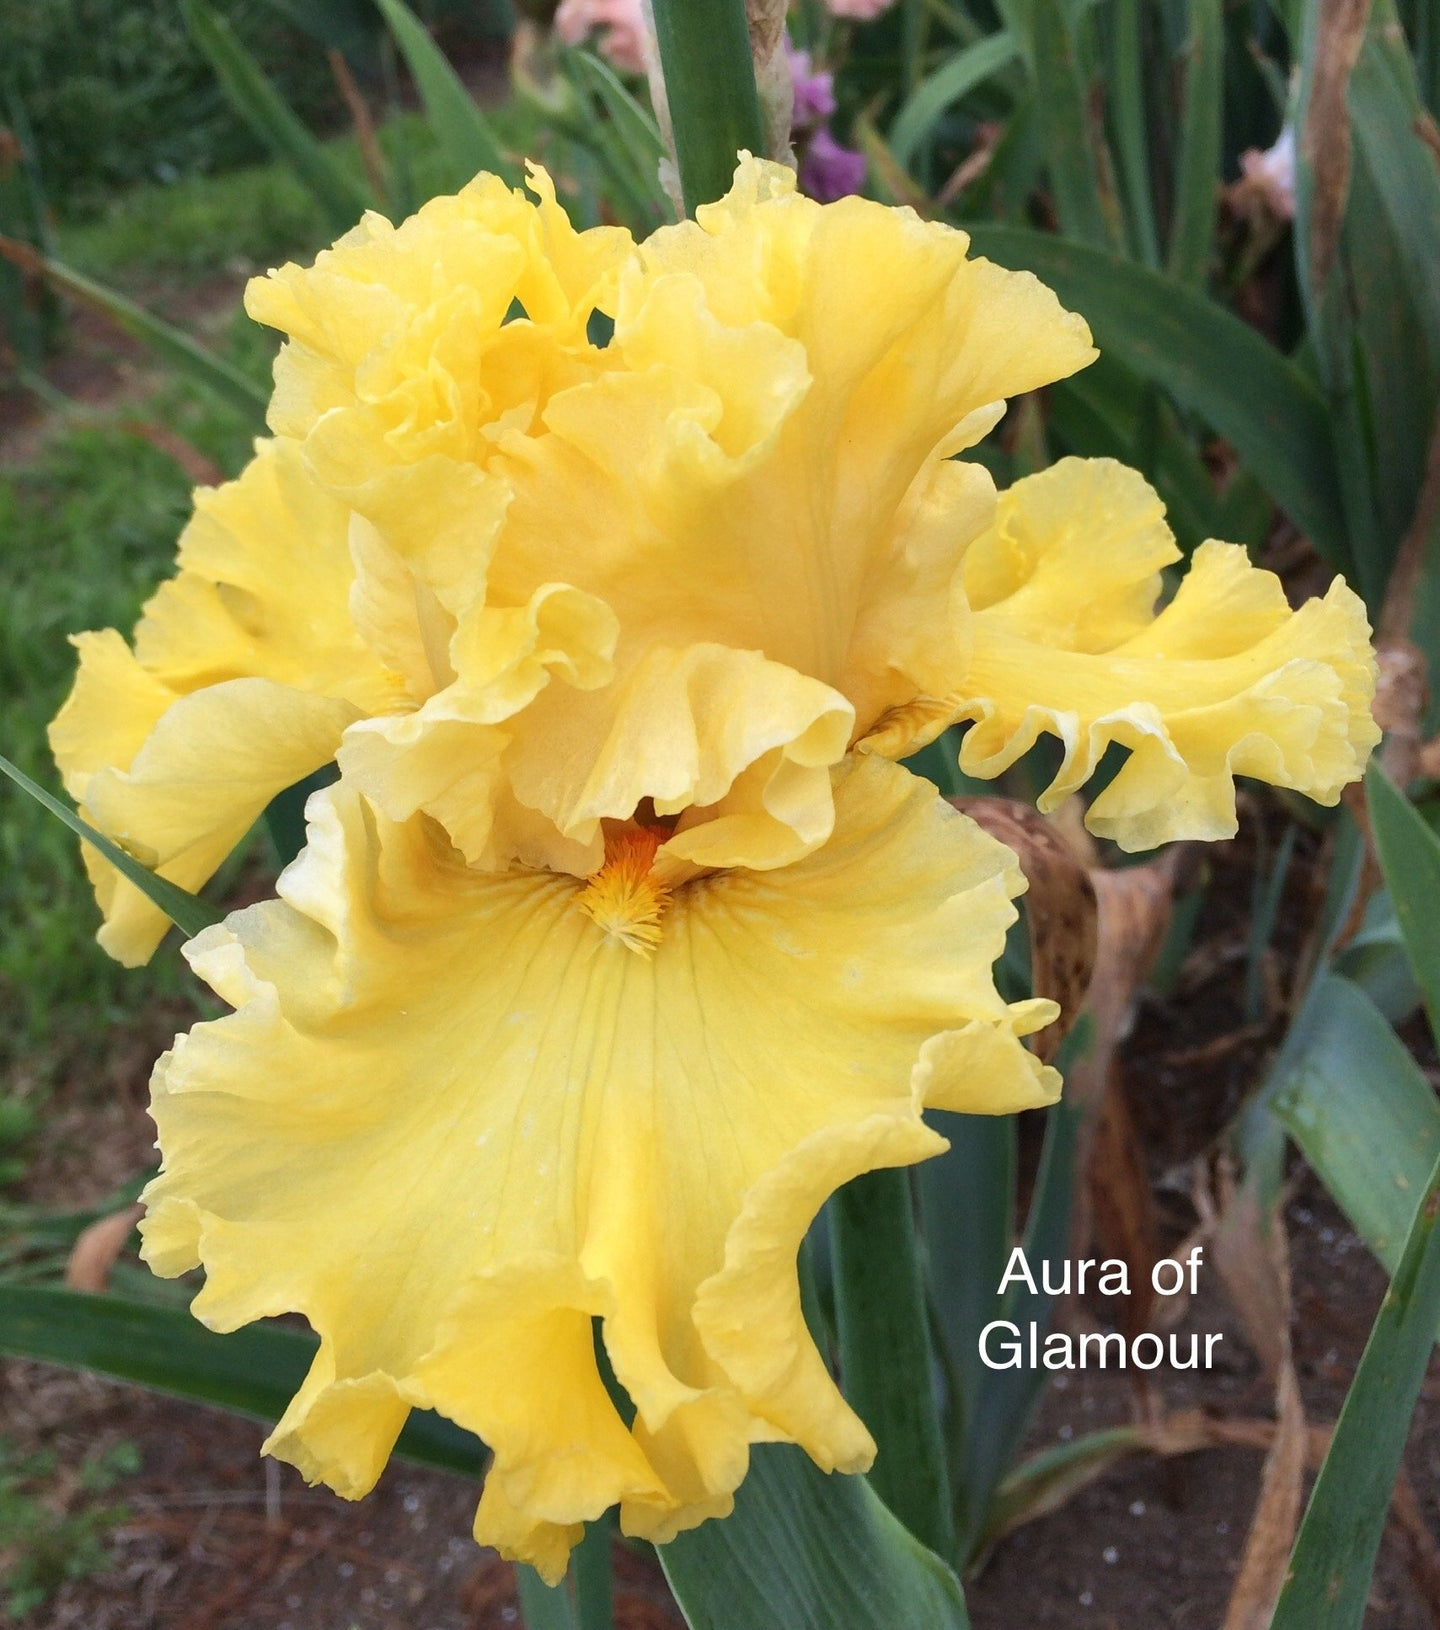 Aura of Glamour (4340458225750)